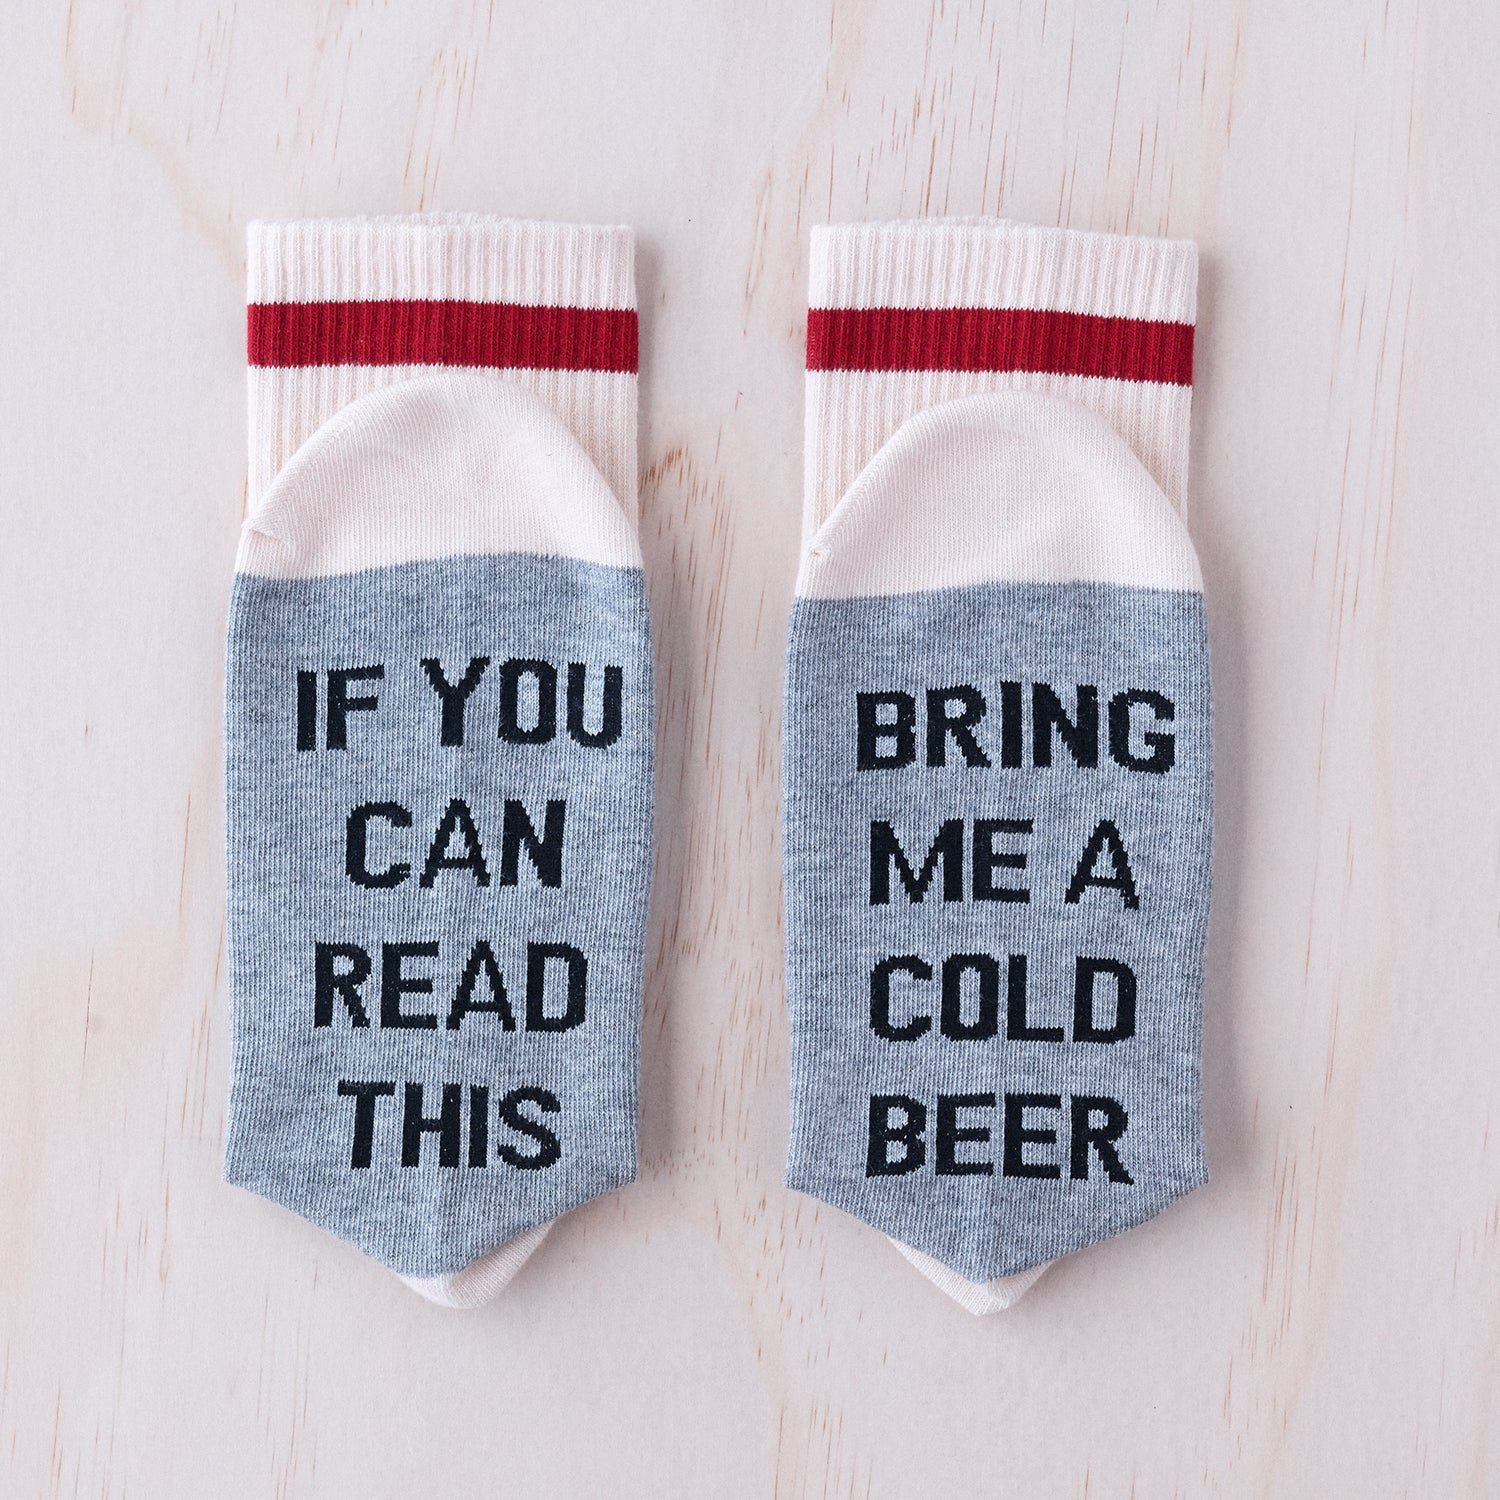 Bring me a cold beer socks.